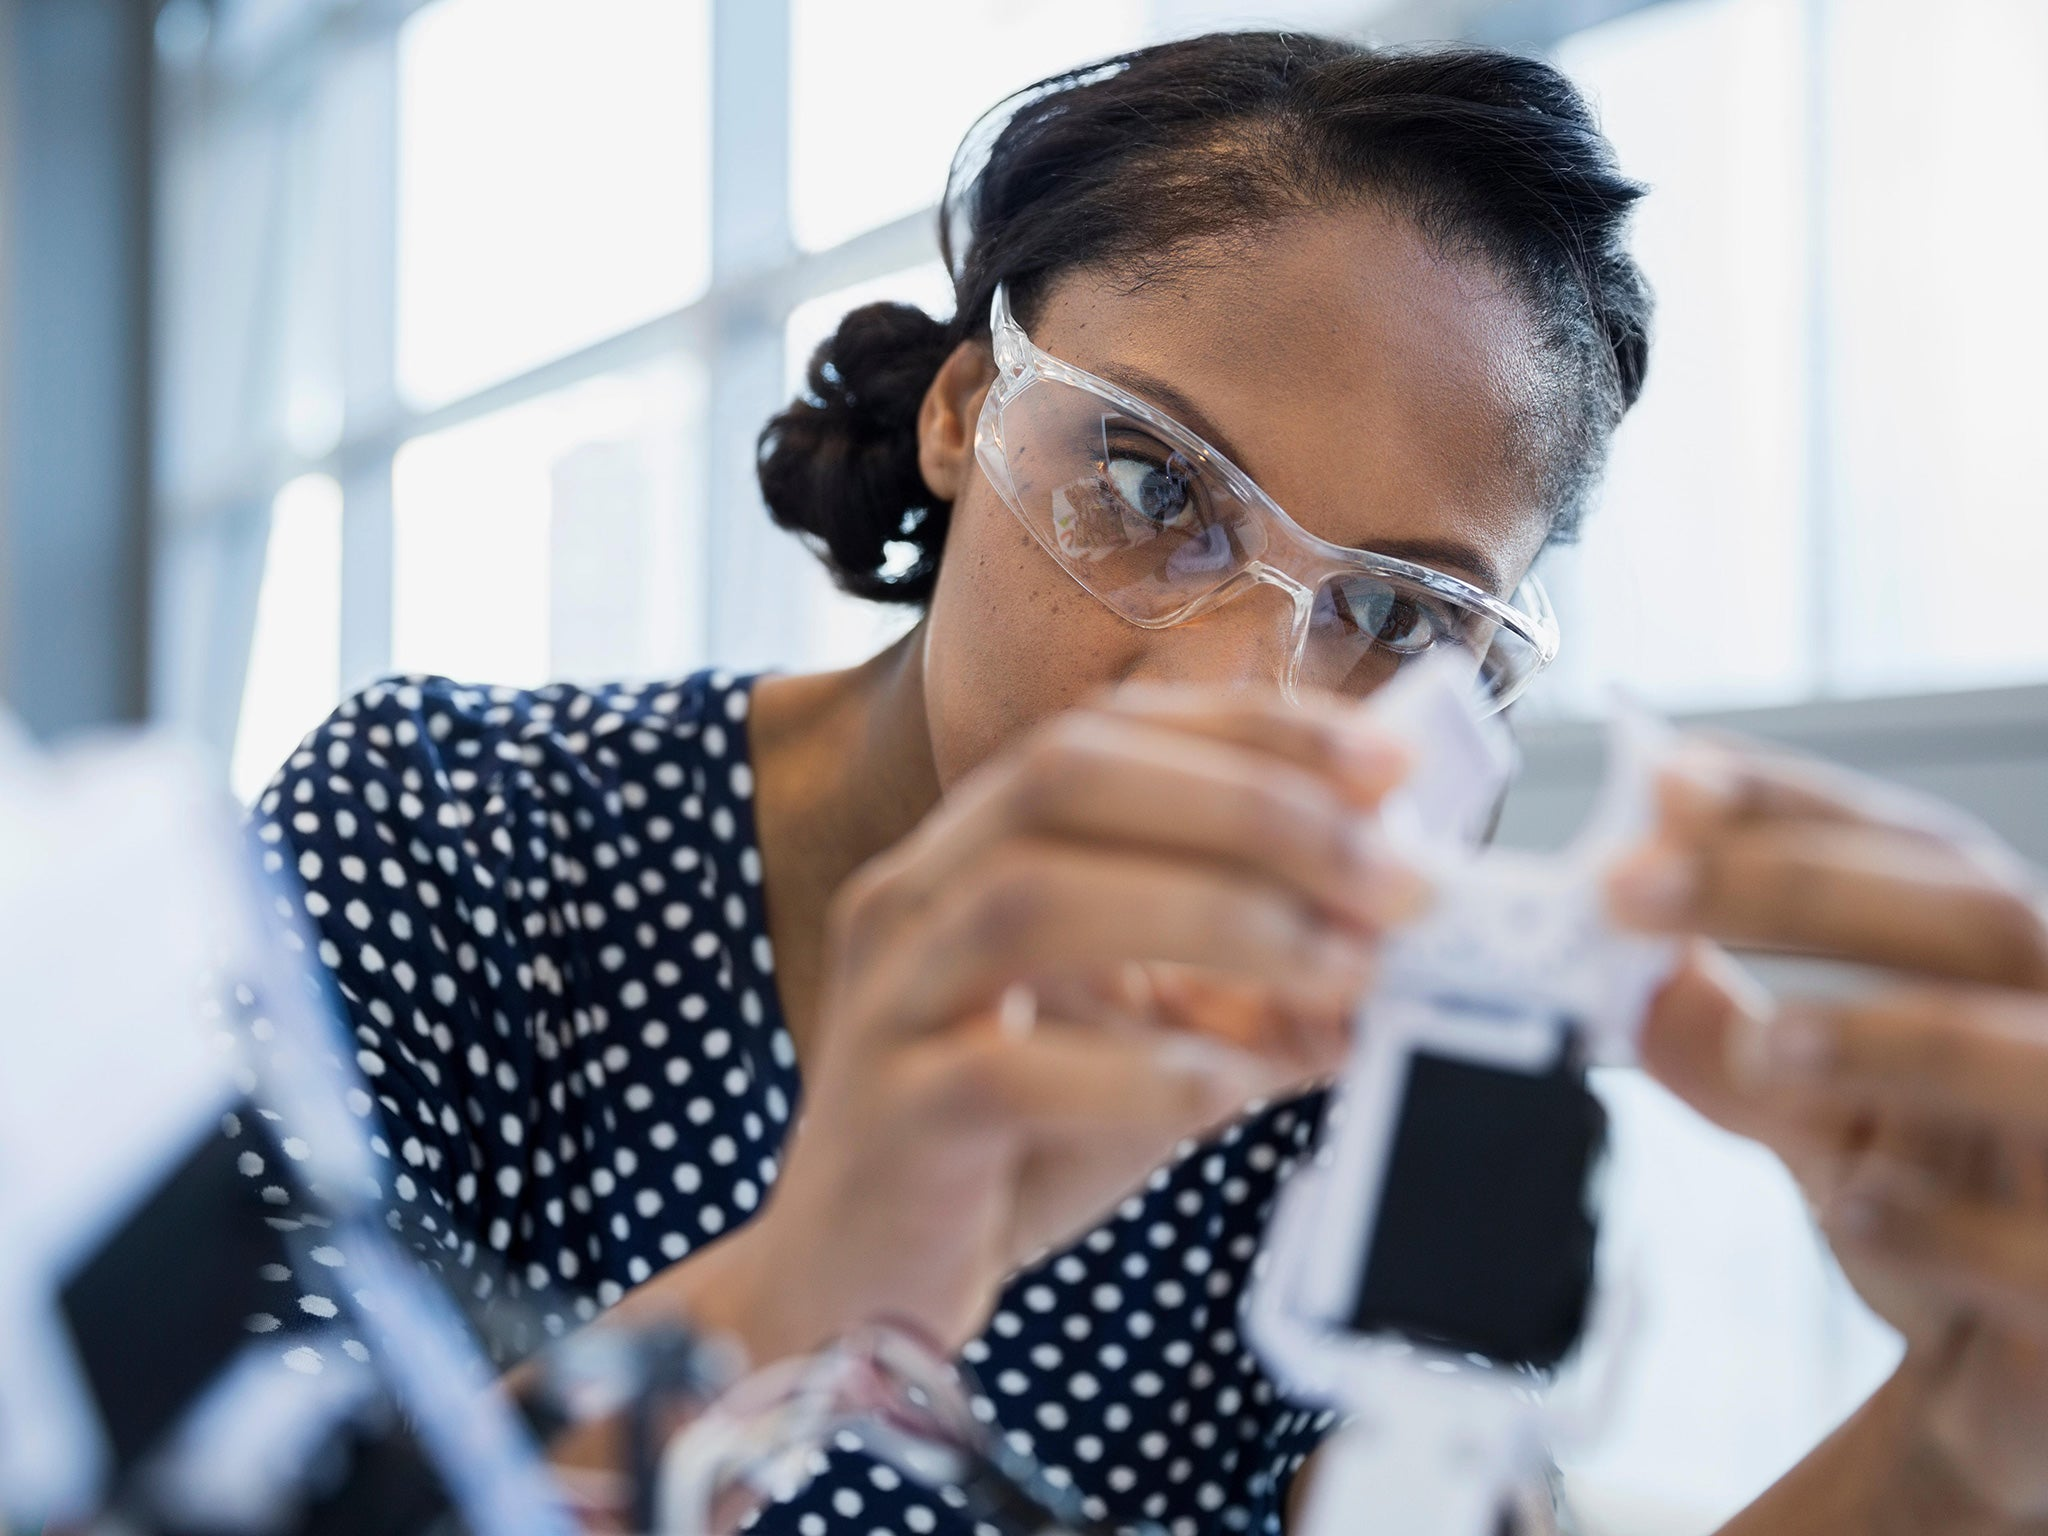 female engineers equalising  path   career   forefront  science  independent